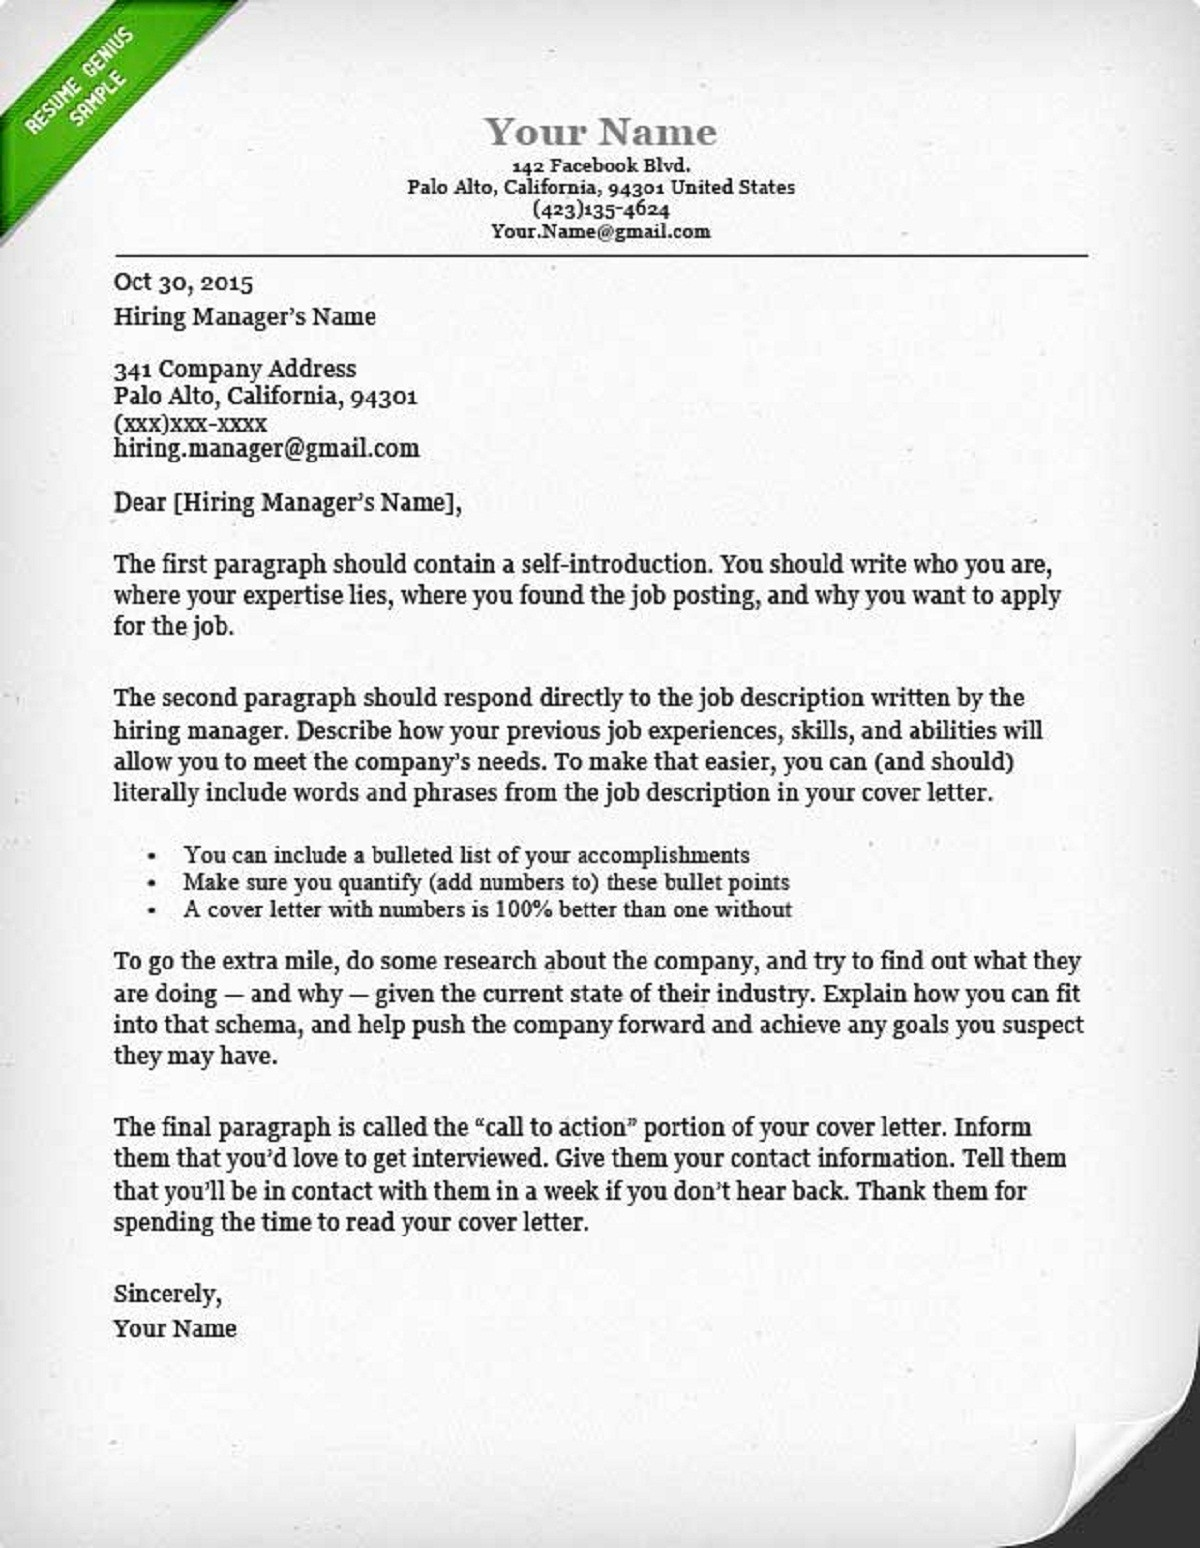 Cover Letter On A Resume Beautiful How to Write A Cover Letter Guide with Sample